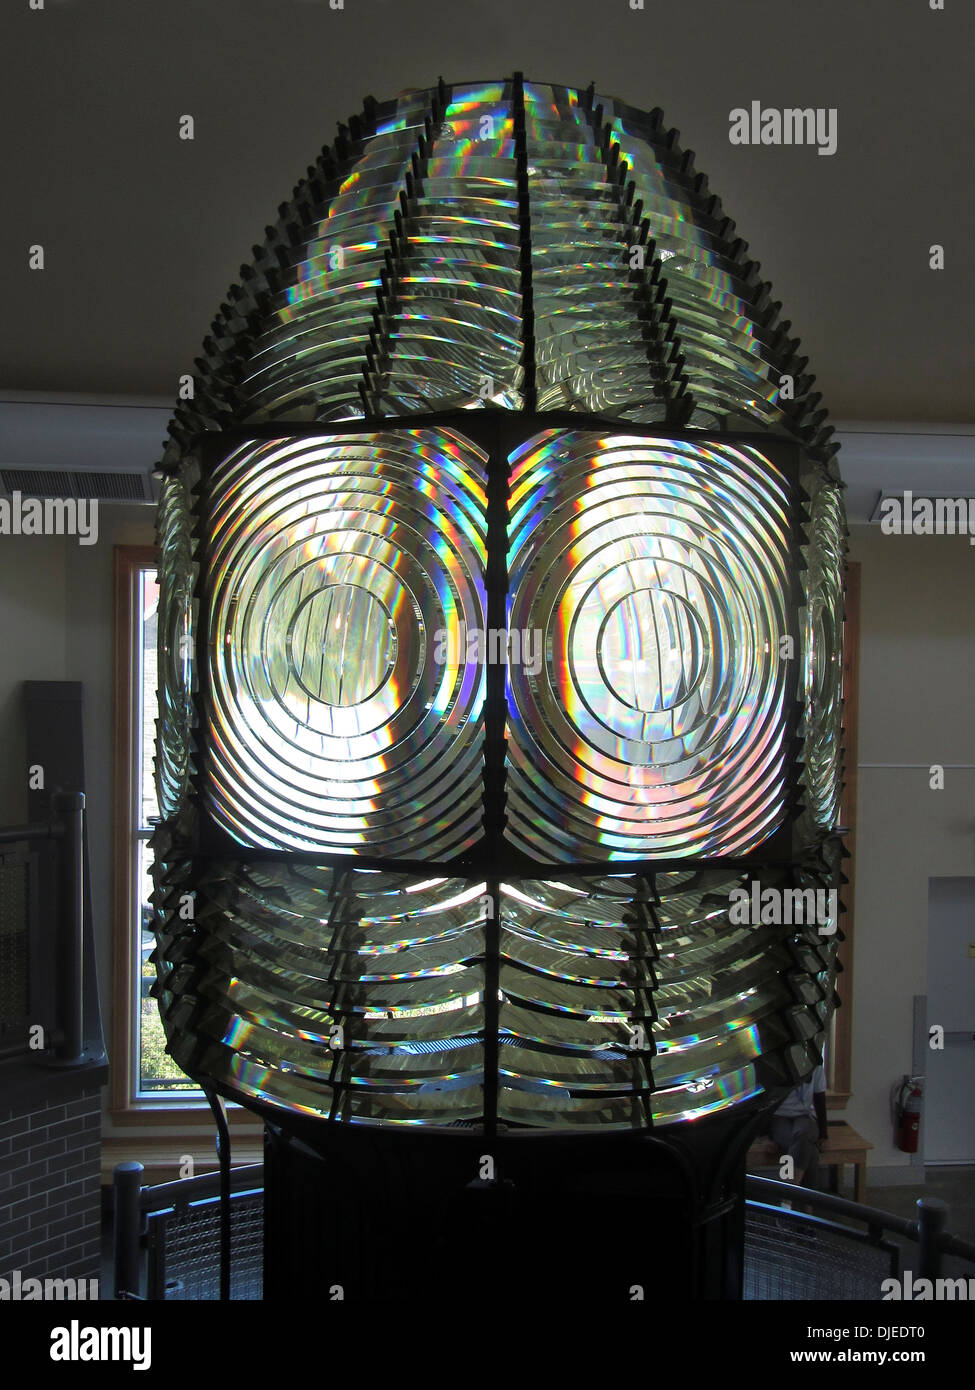 The old fresnel lens from the Fire Island Lighthouse, now housed in a museum next to the lighthouse on Fire Island - Stock Image